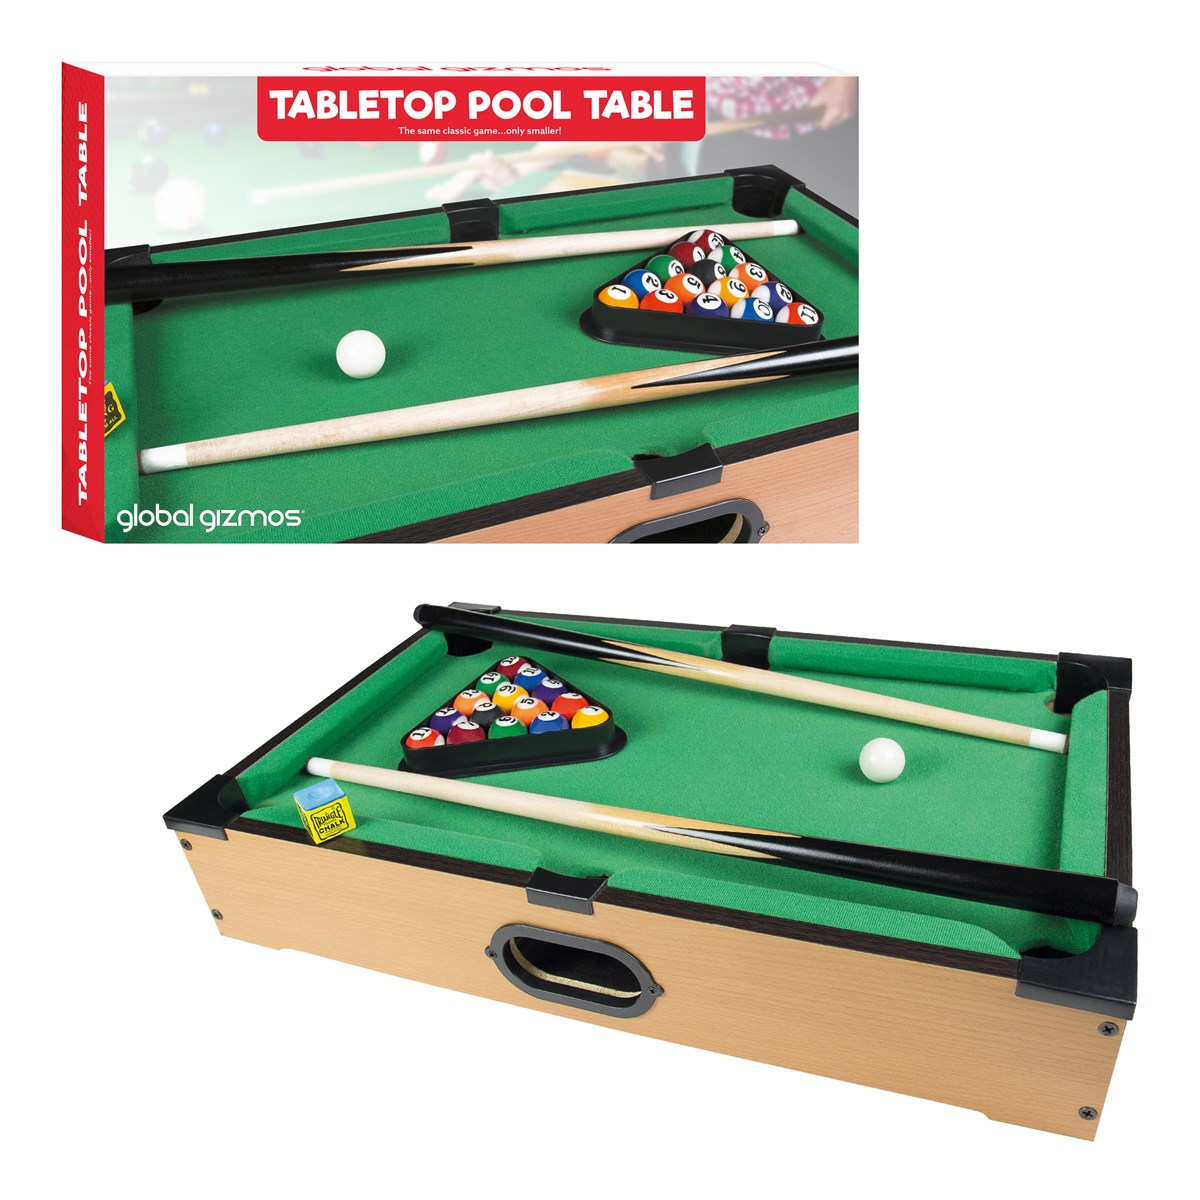 Table Top Pool Table - Pool table top only